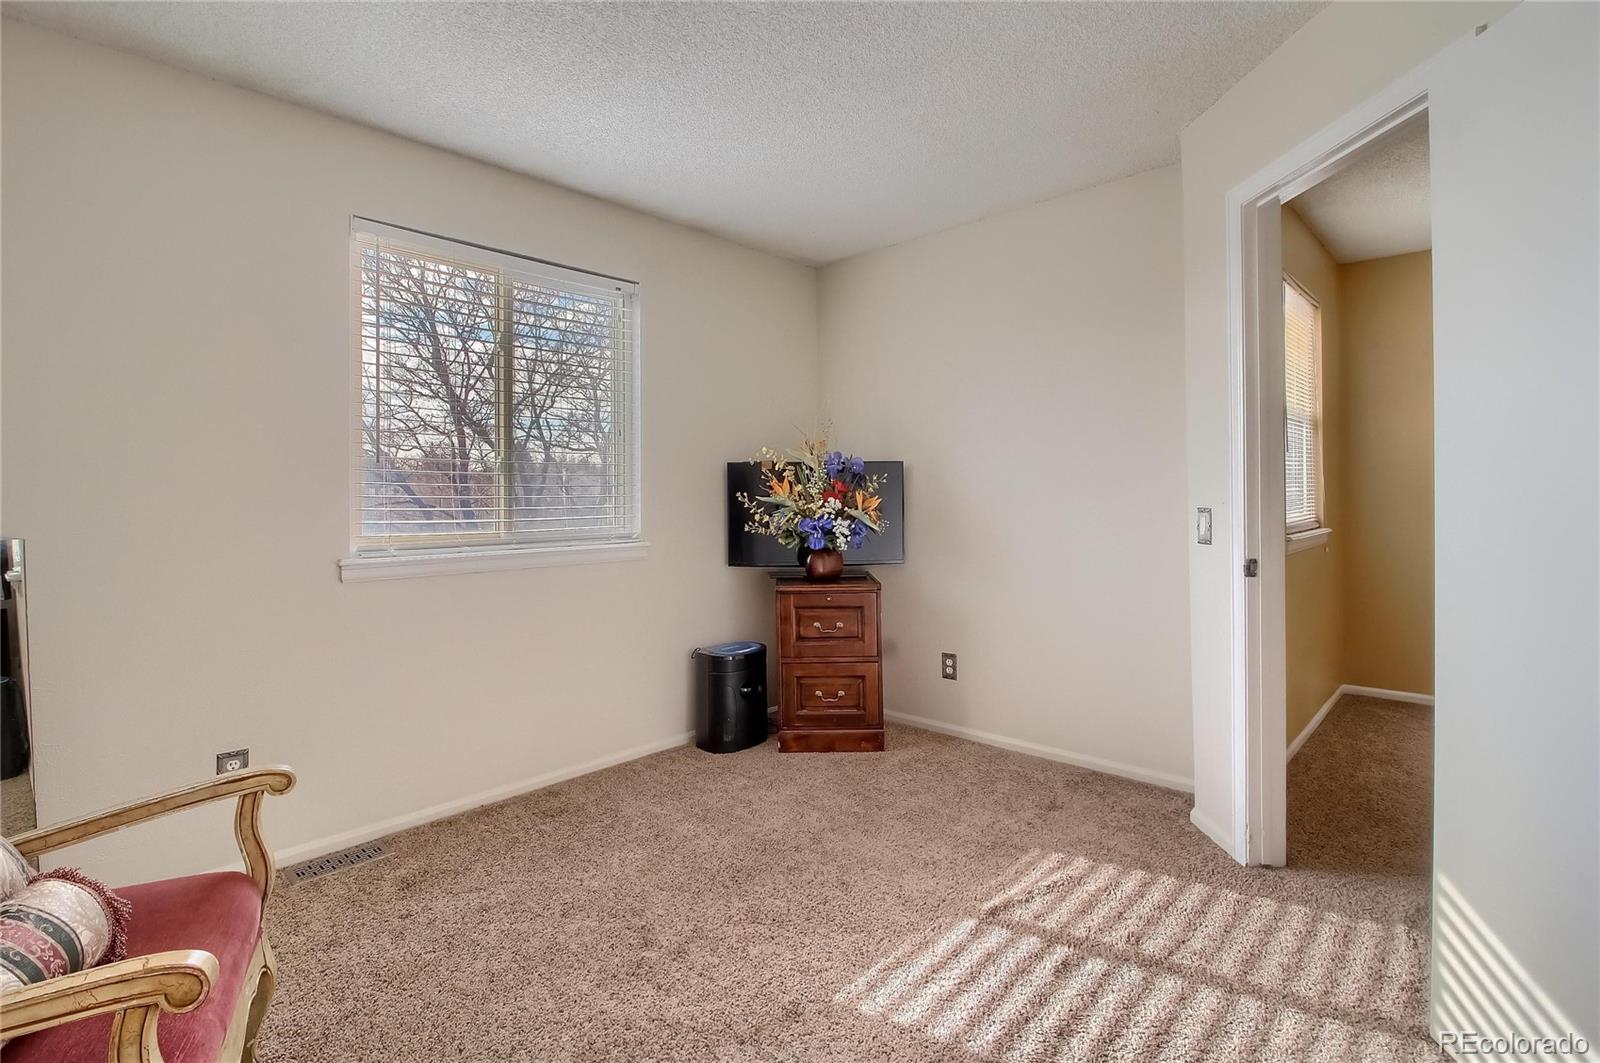 MLS# 3641043 - 20 - 3510 S Telluride Circle #C, Aurora, CO 80013